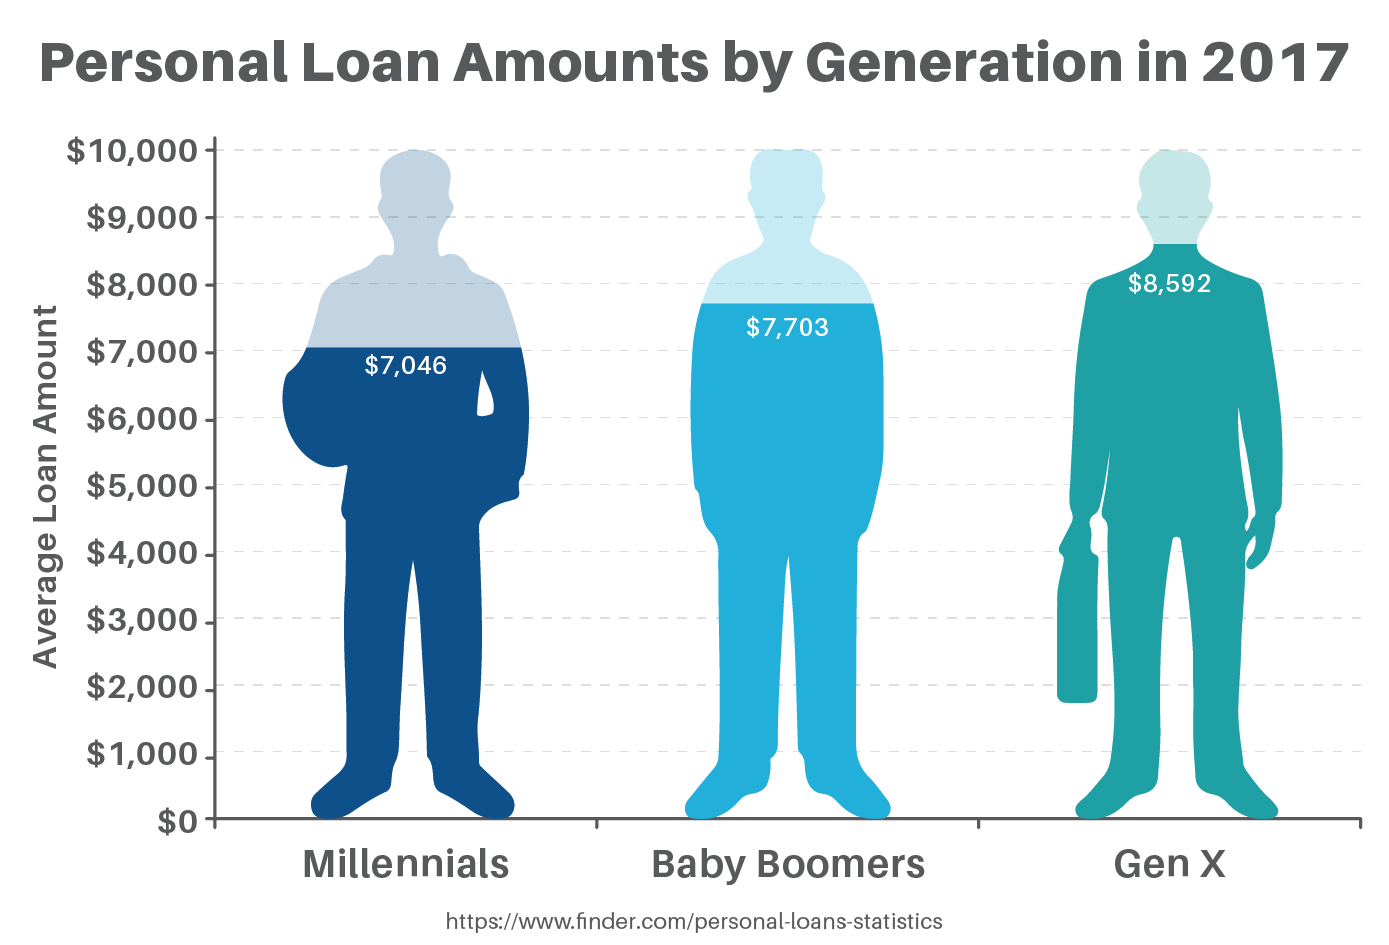 Personal Loan Amounts by Generation in 2017